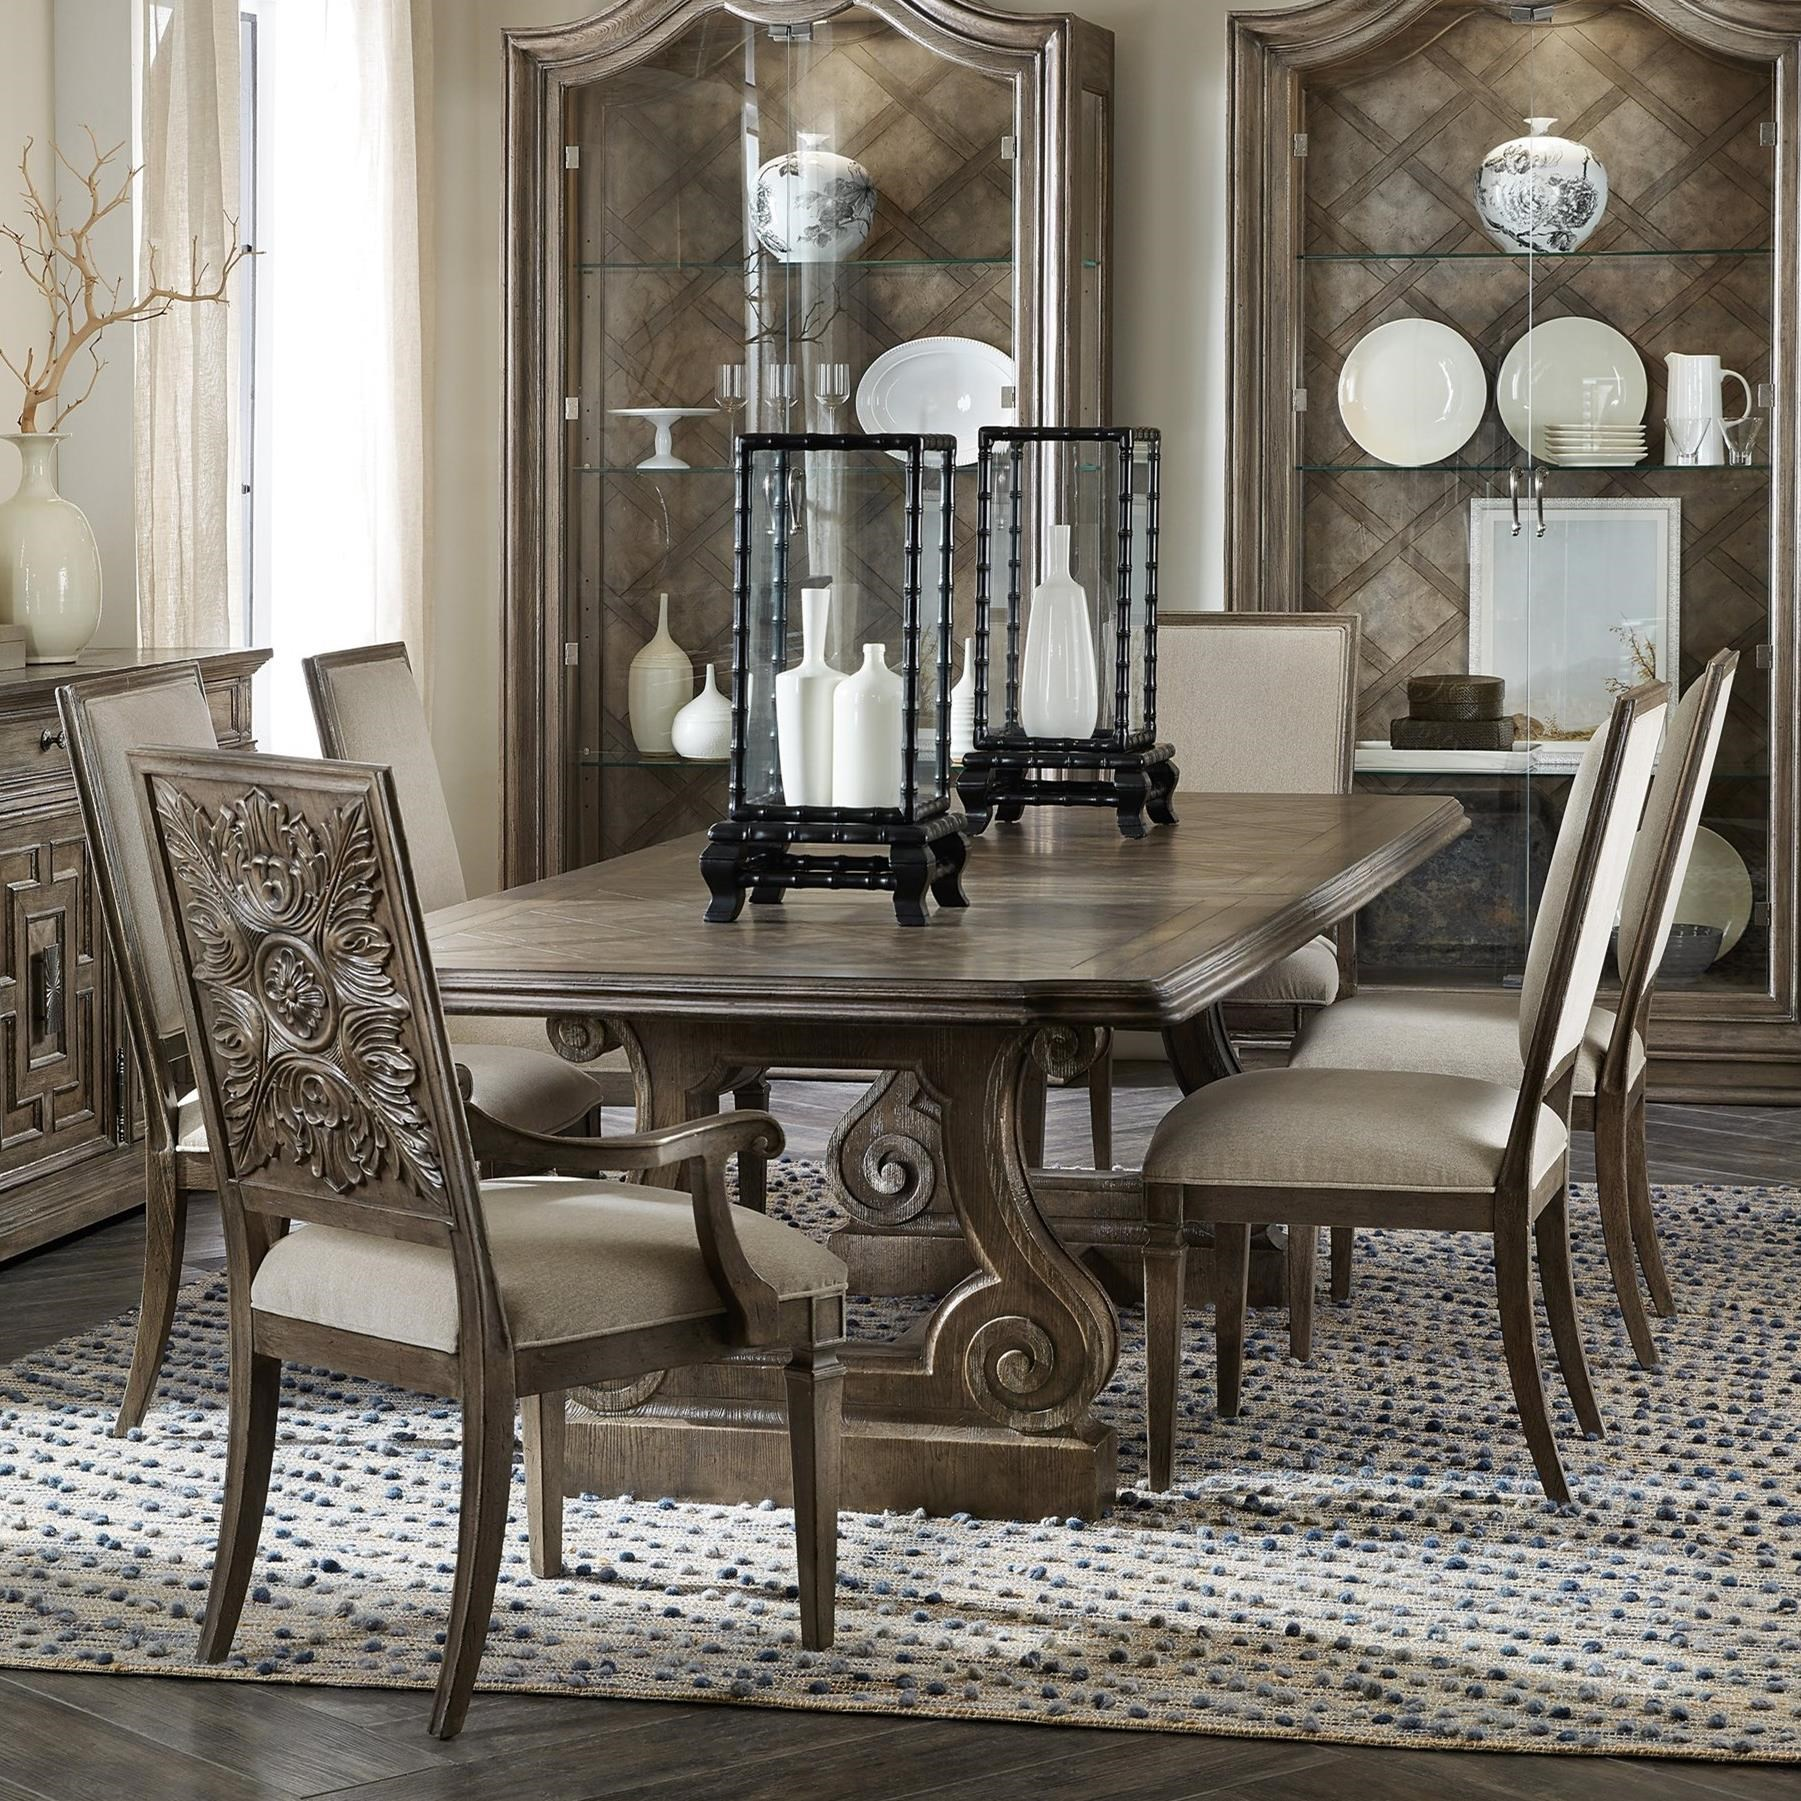 Woodlands 7-Piece Table and Chair Set by Hooker Furniture at Baer's Furniture